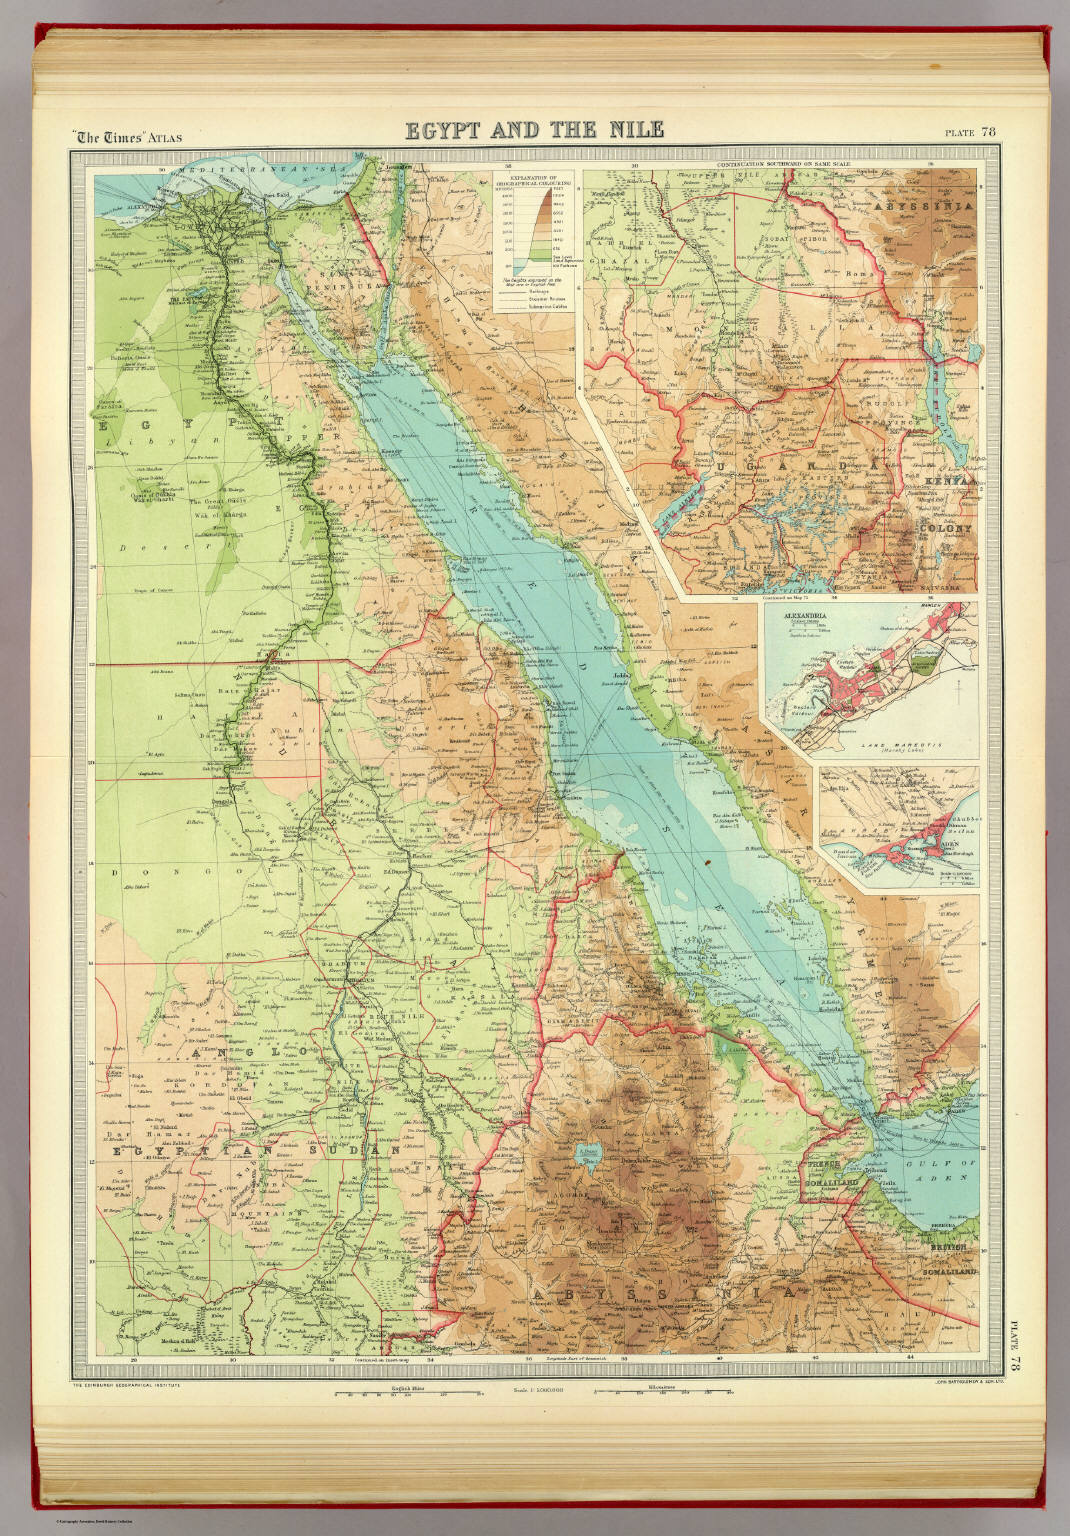 Egypt And The Nile David Rumsey Historical Map Collection - Map of egypt 1920